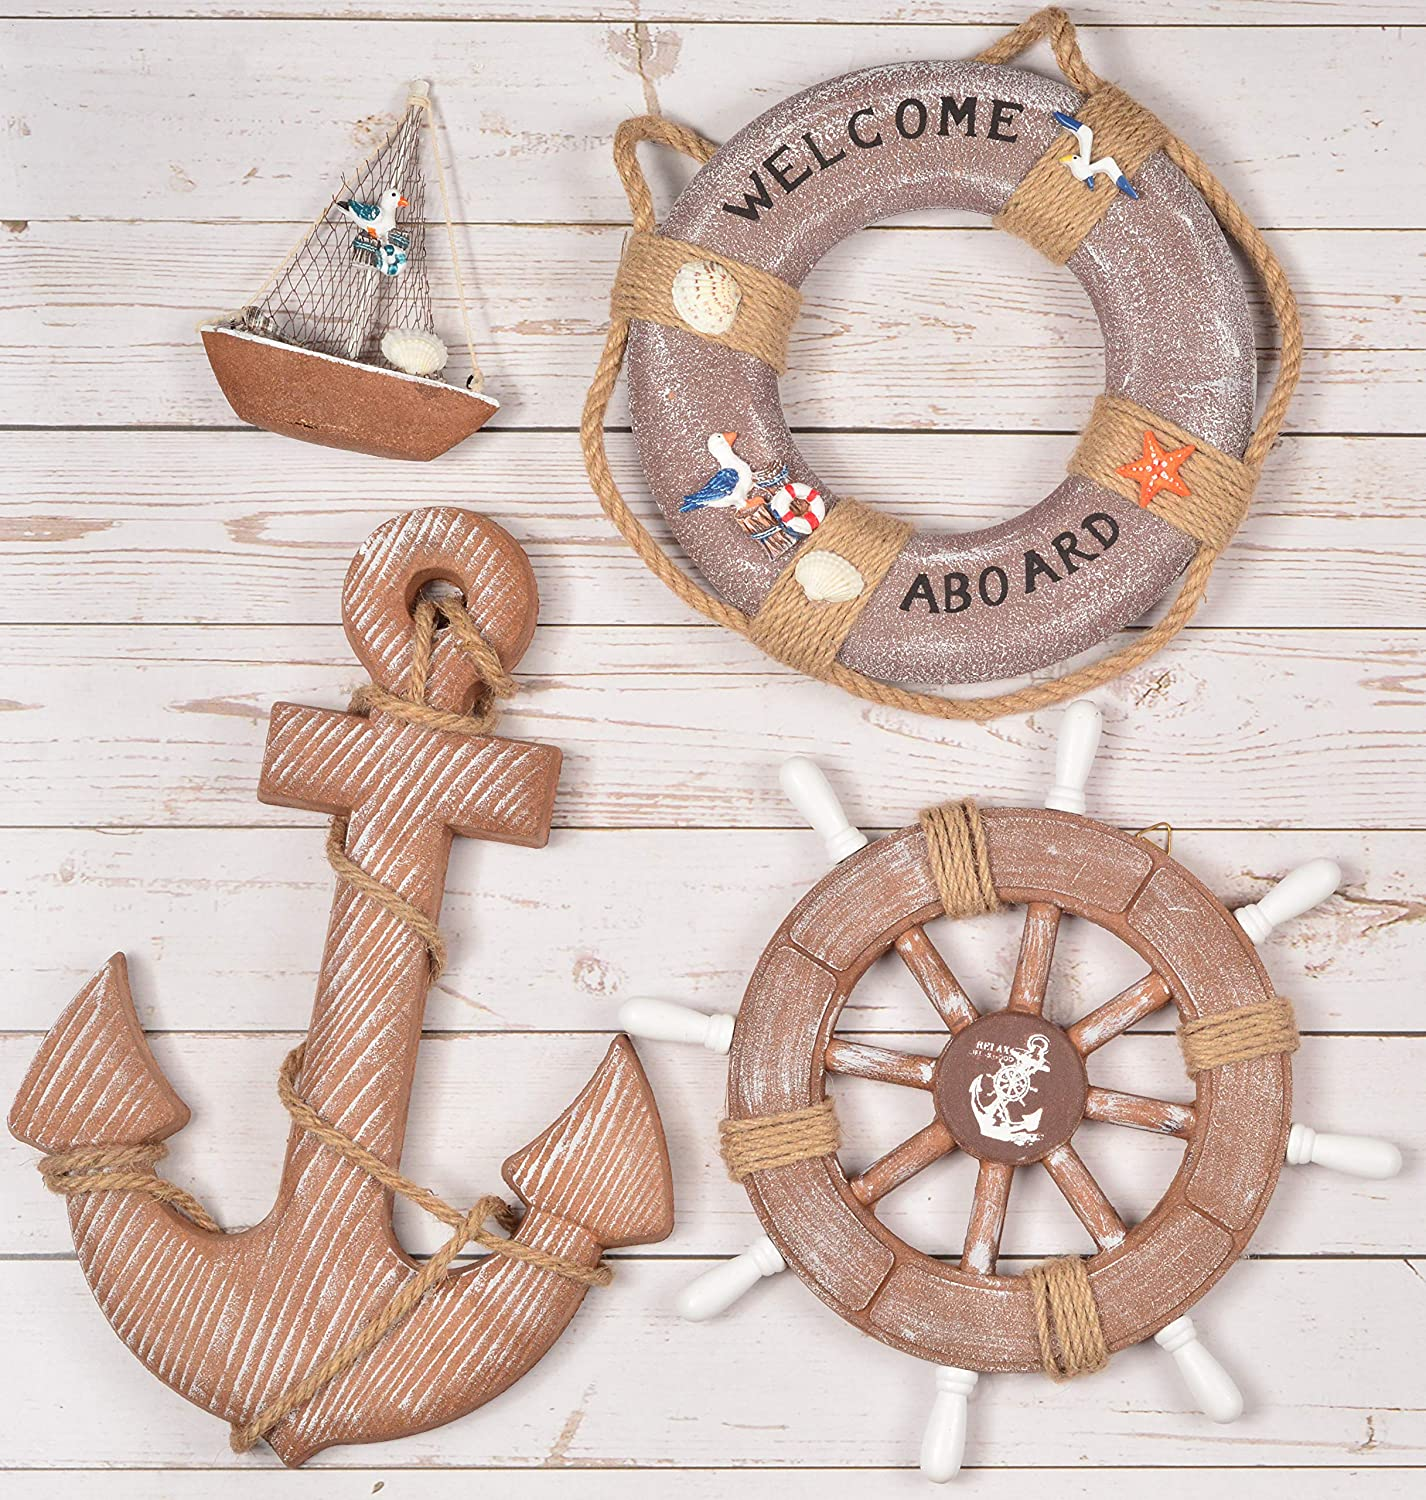 WOODEN NAUTICAL LIGHTHOUSE ANCHOR WALL HANGING ORNAMENT, BEACH WOODEN BOAT SHIP STEERING WHEEL WALL DECOR, NAUTICAL LIFE RING WALL AND DOOR HANGING ORNAMENT PLAQUE (coffee)